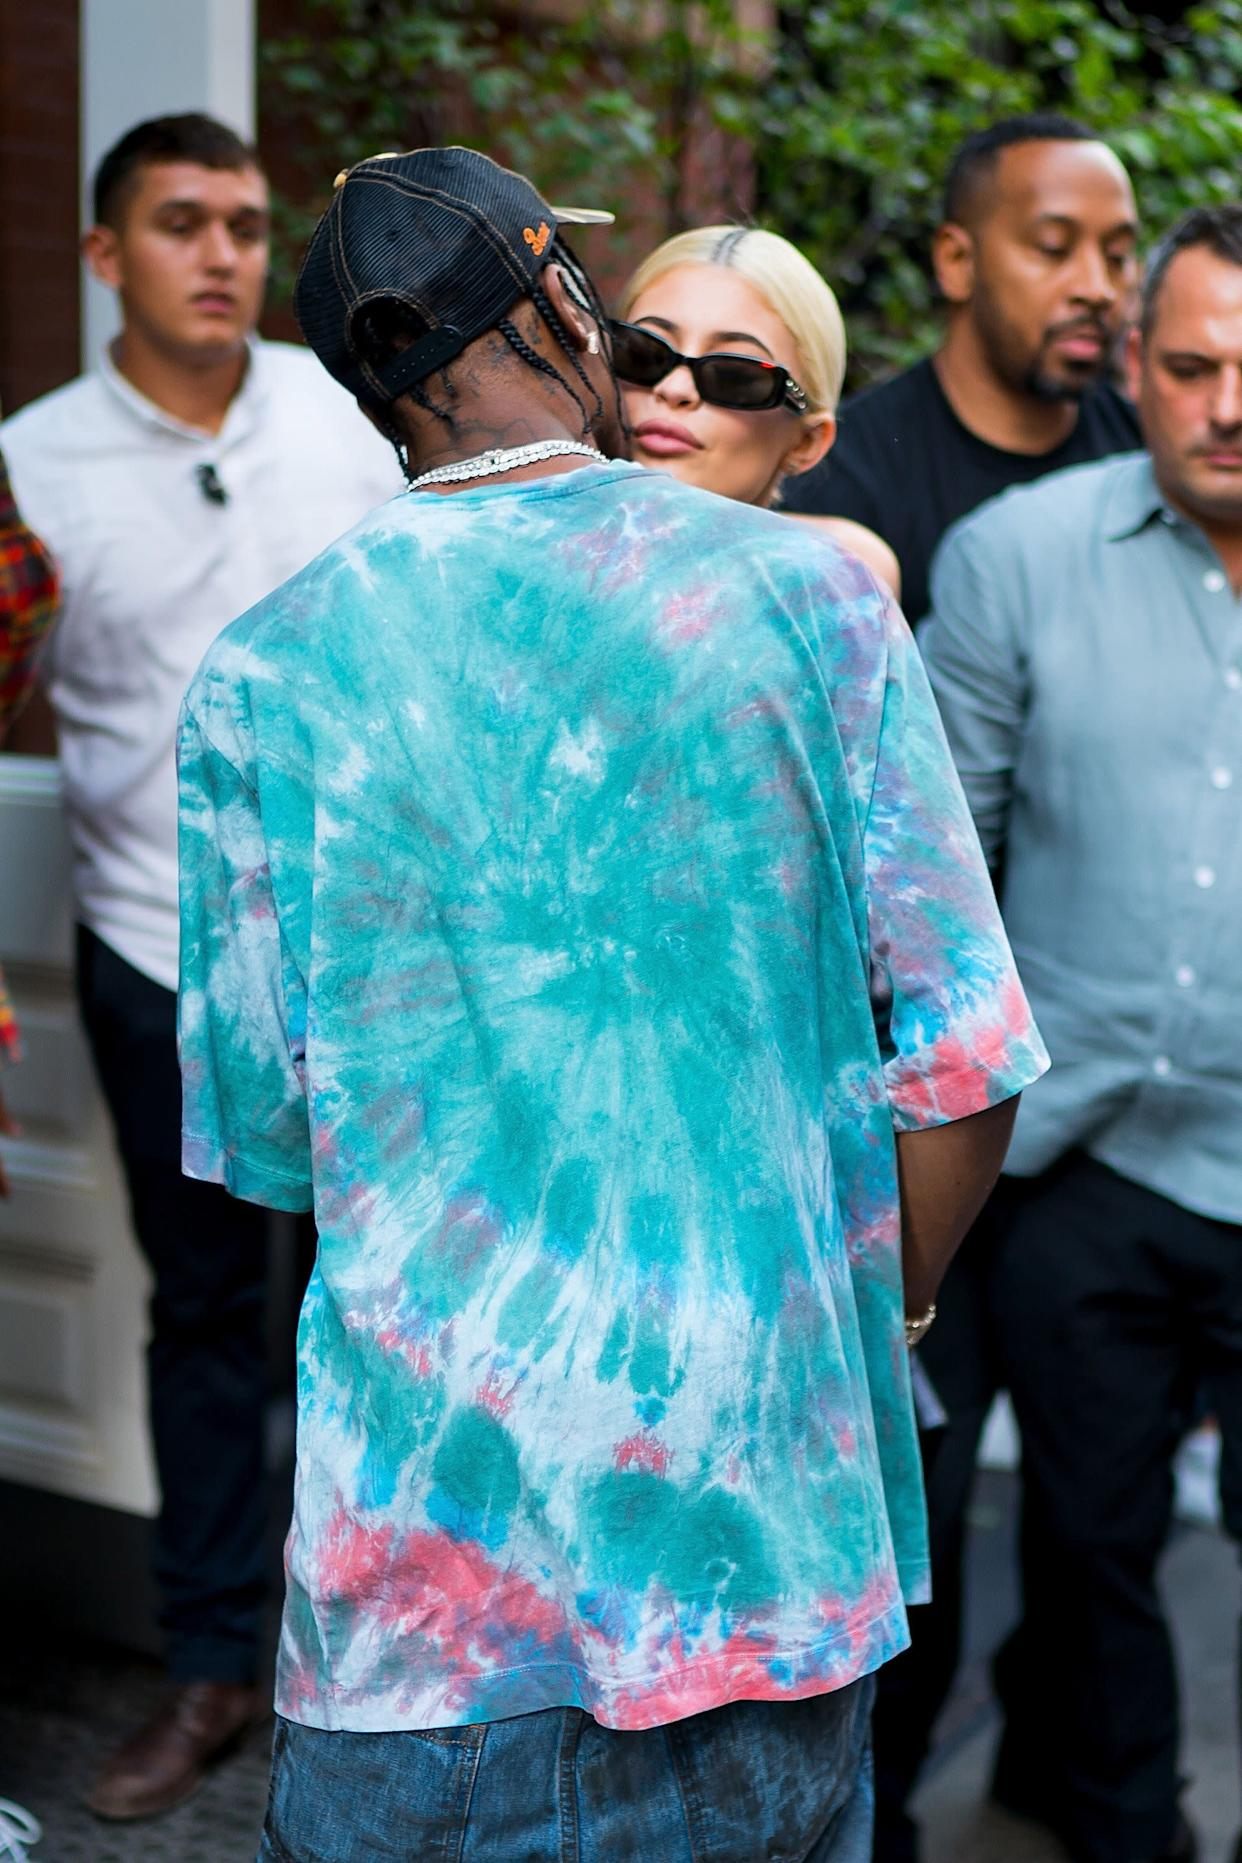 NEW YORK, NY - AUGUST 21: Travis Scott (L) and Kylie Jenner are seen in SoHo on August 21, 2018 in New York City. (Photo by Gotham/GC Images)